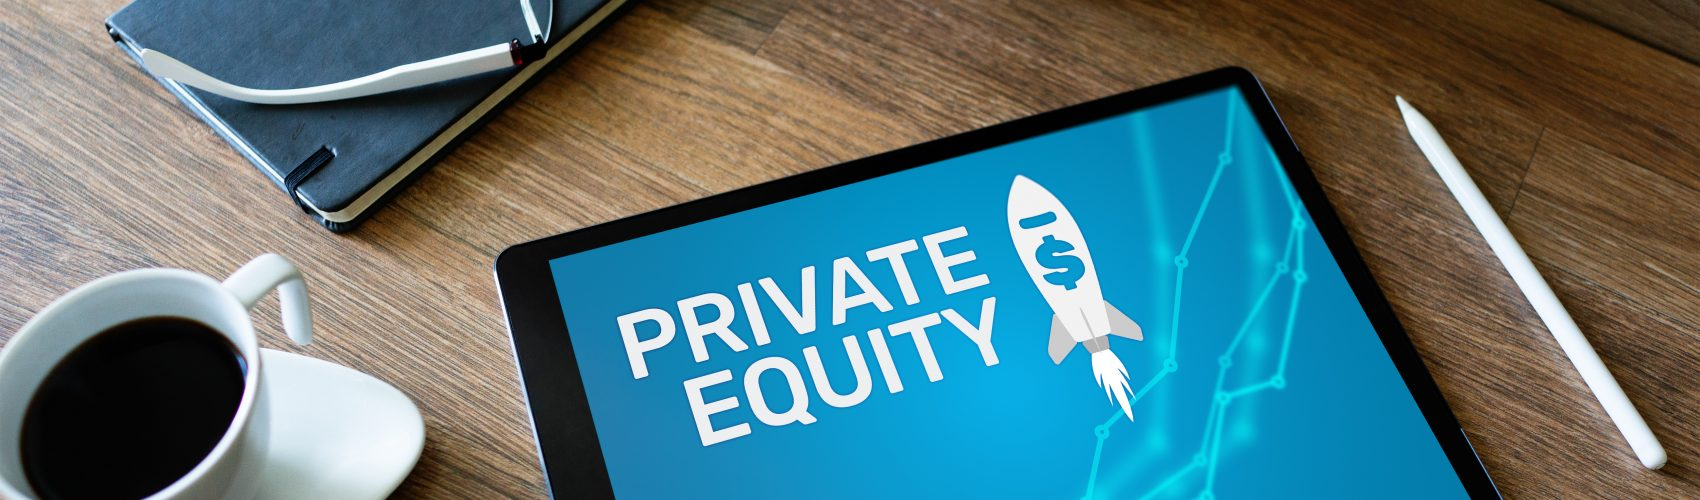 private equity blog featured image